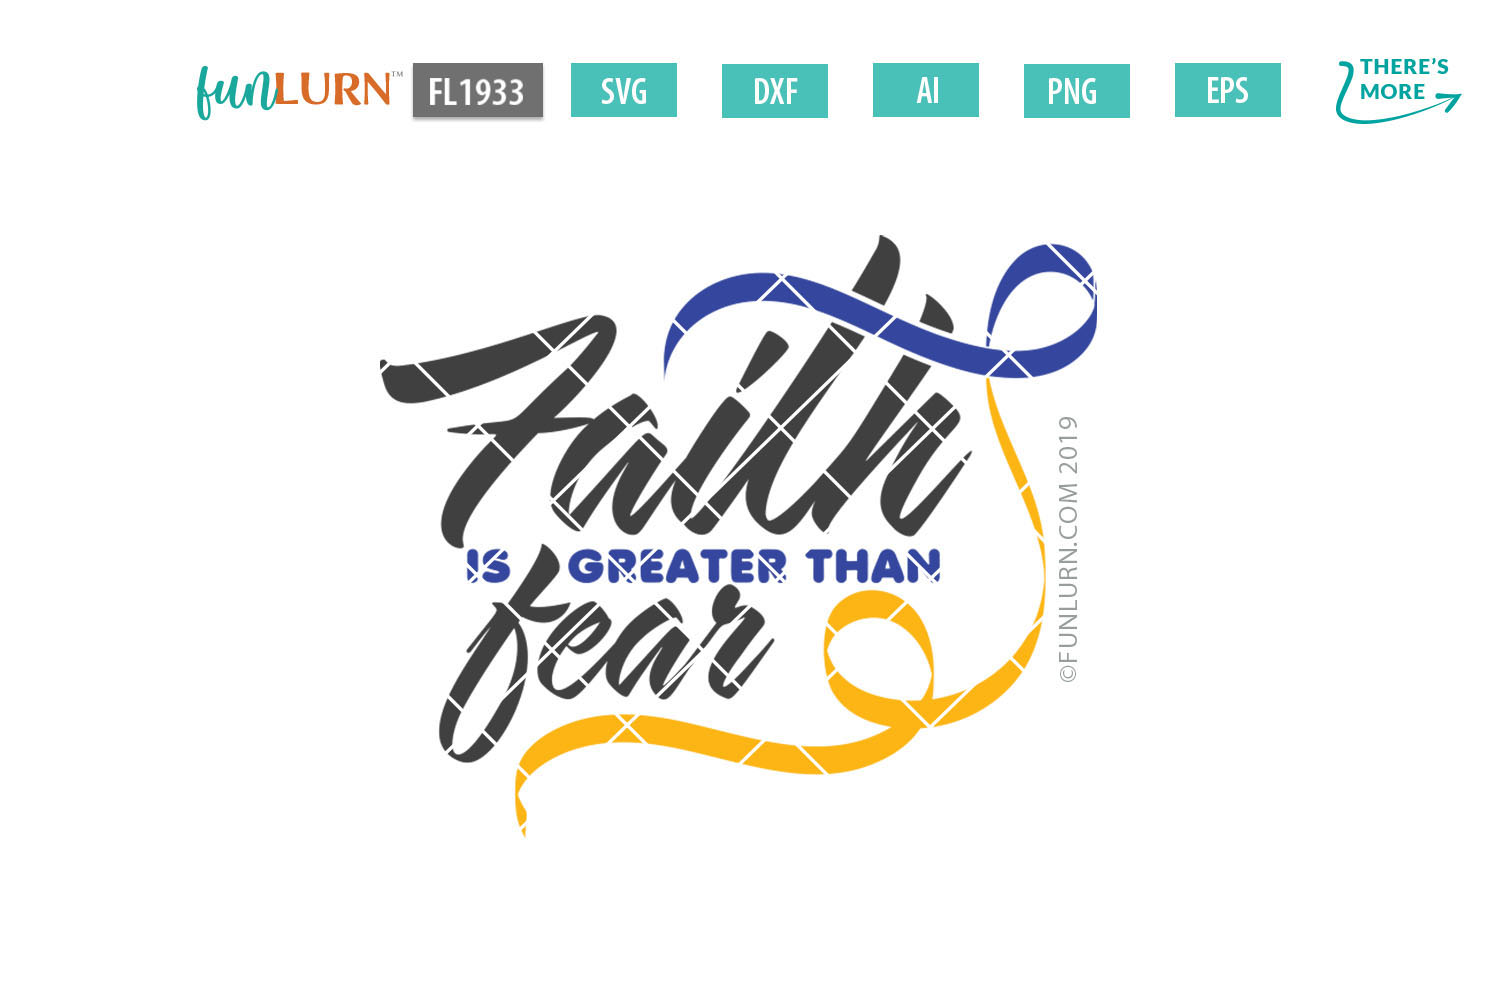 Faith is Greater Than Fear Purple Blue Yellow Ribbon SVG example image 2